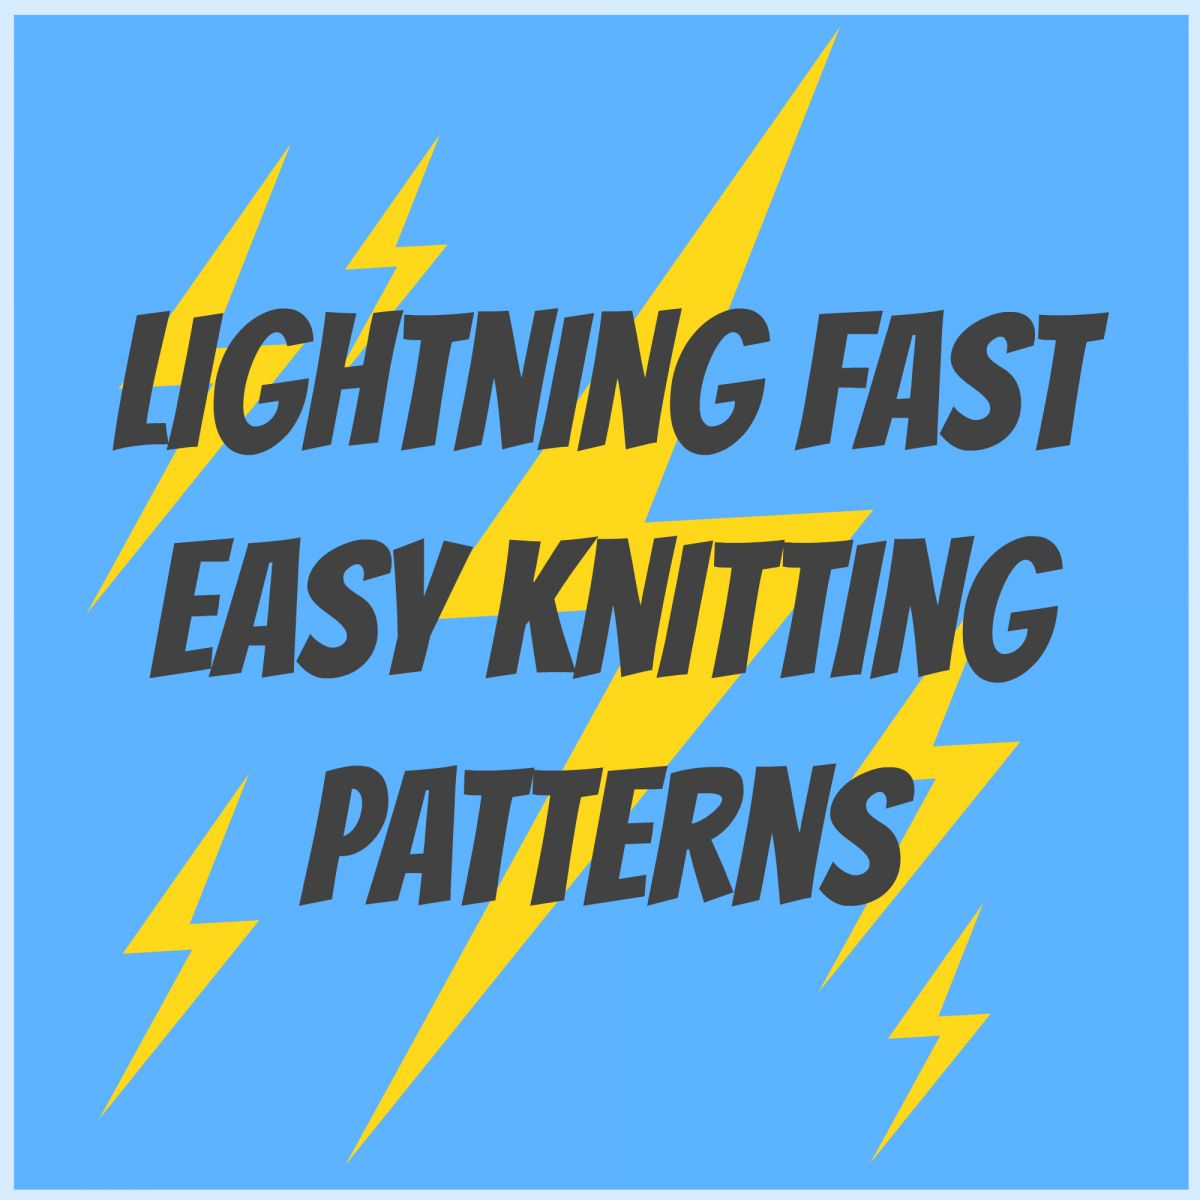 8 Lightning Fast Easy Knitting Patterns